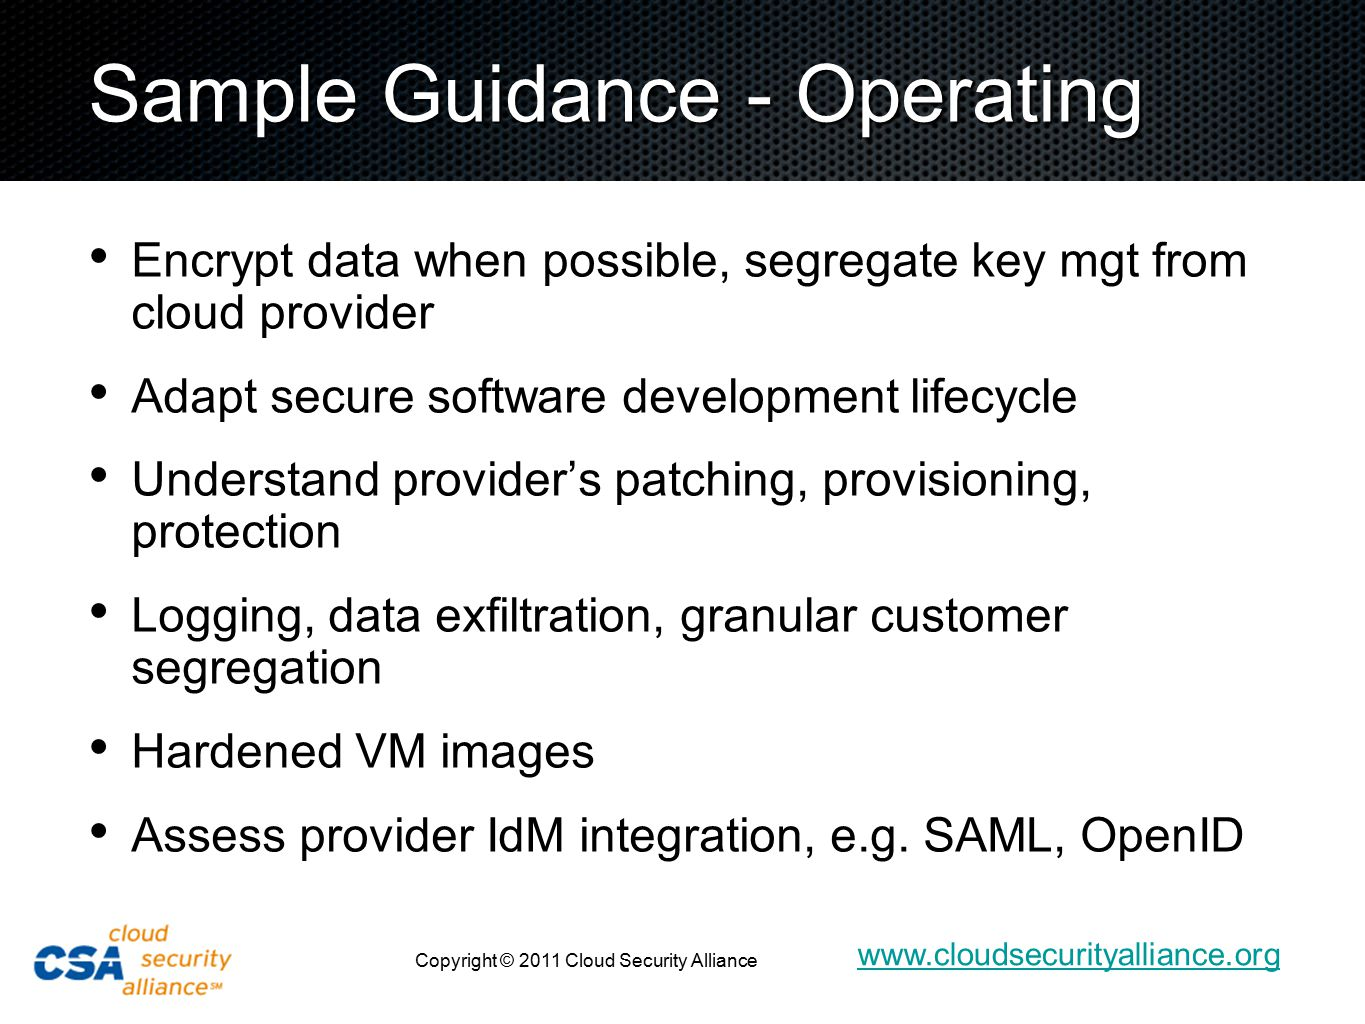 www.cloudsecurityalliance.org Copyright © 2011 Cloud Security Alliance Sample Guidance - Operating Encrypt data when possible, segregate key mgt from cloud provider Adapt secure software development lifecycle Understand provider's patching, provisioning, protection Logging, data exfiltration, granular customer segregation Hardened VM images Assess provider IdM integration, e.g.